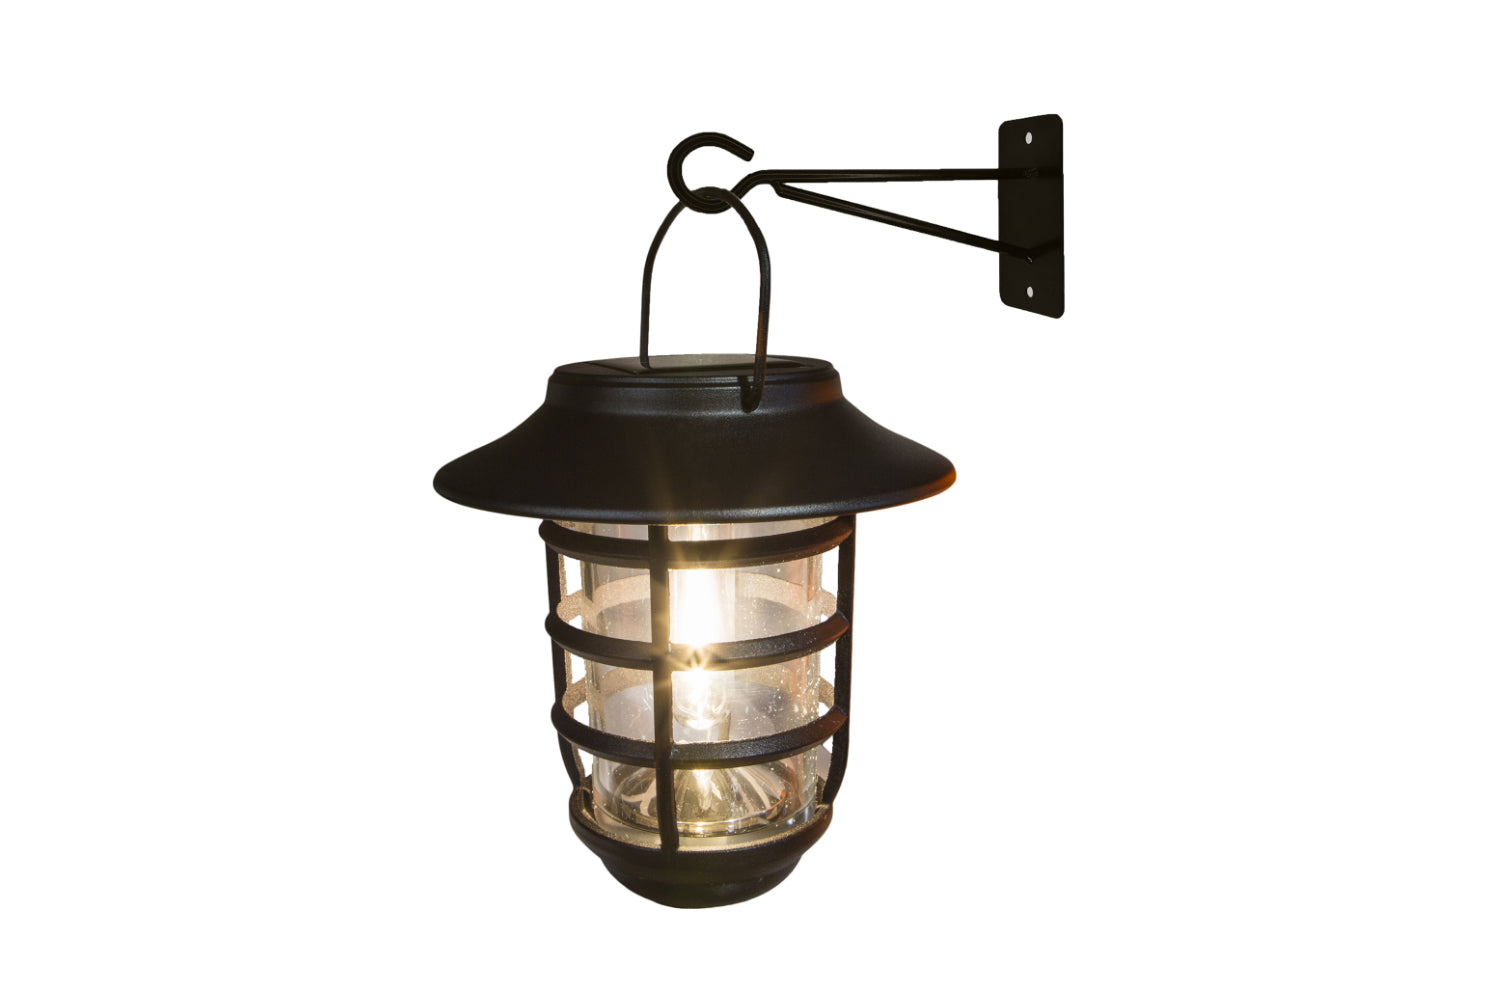 BLACK ALUMINUM NOTTINGHAM SOLAR HANGING COACH LIGHT